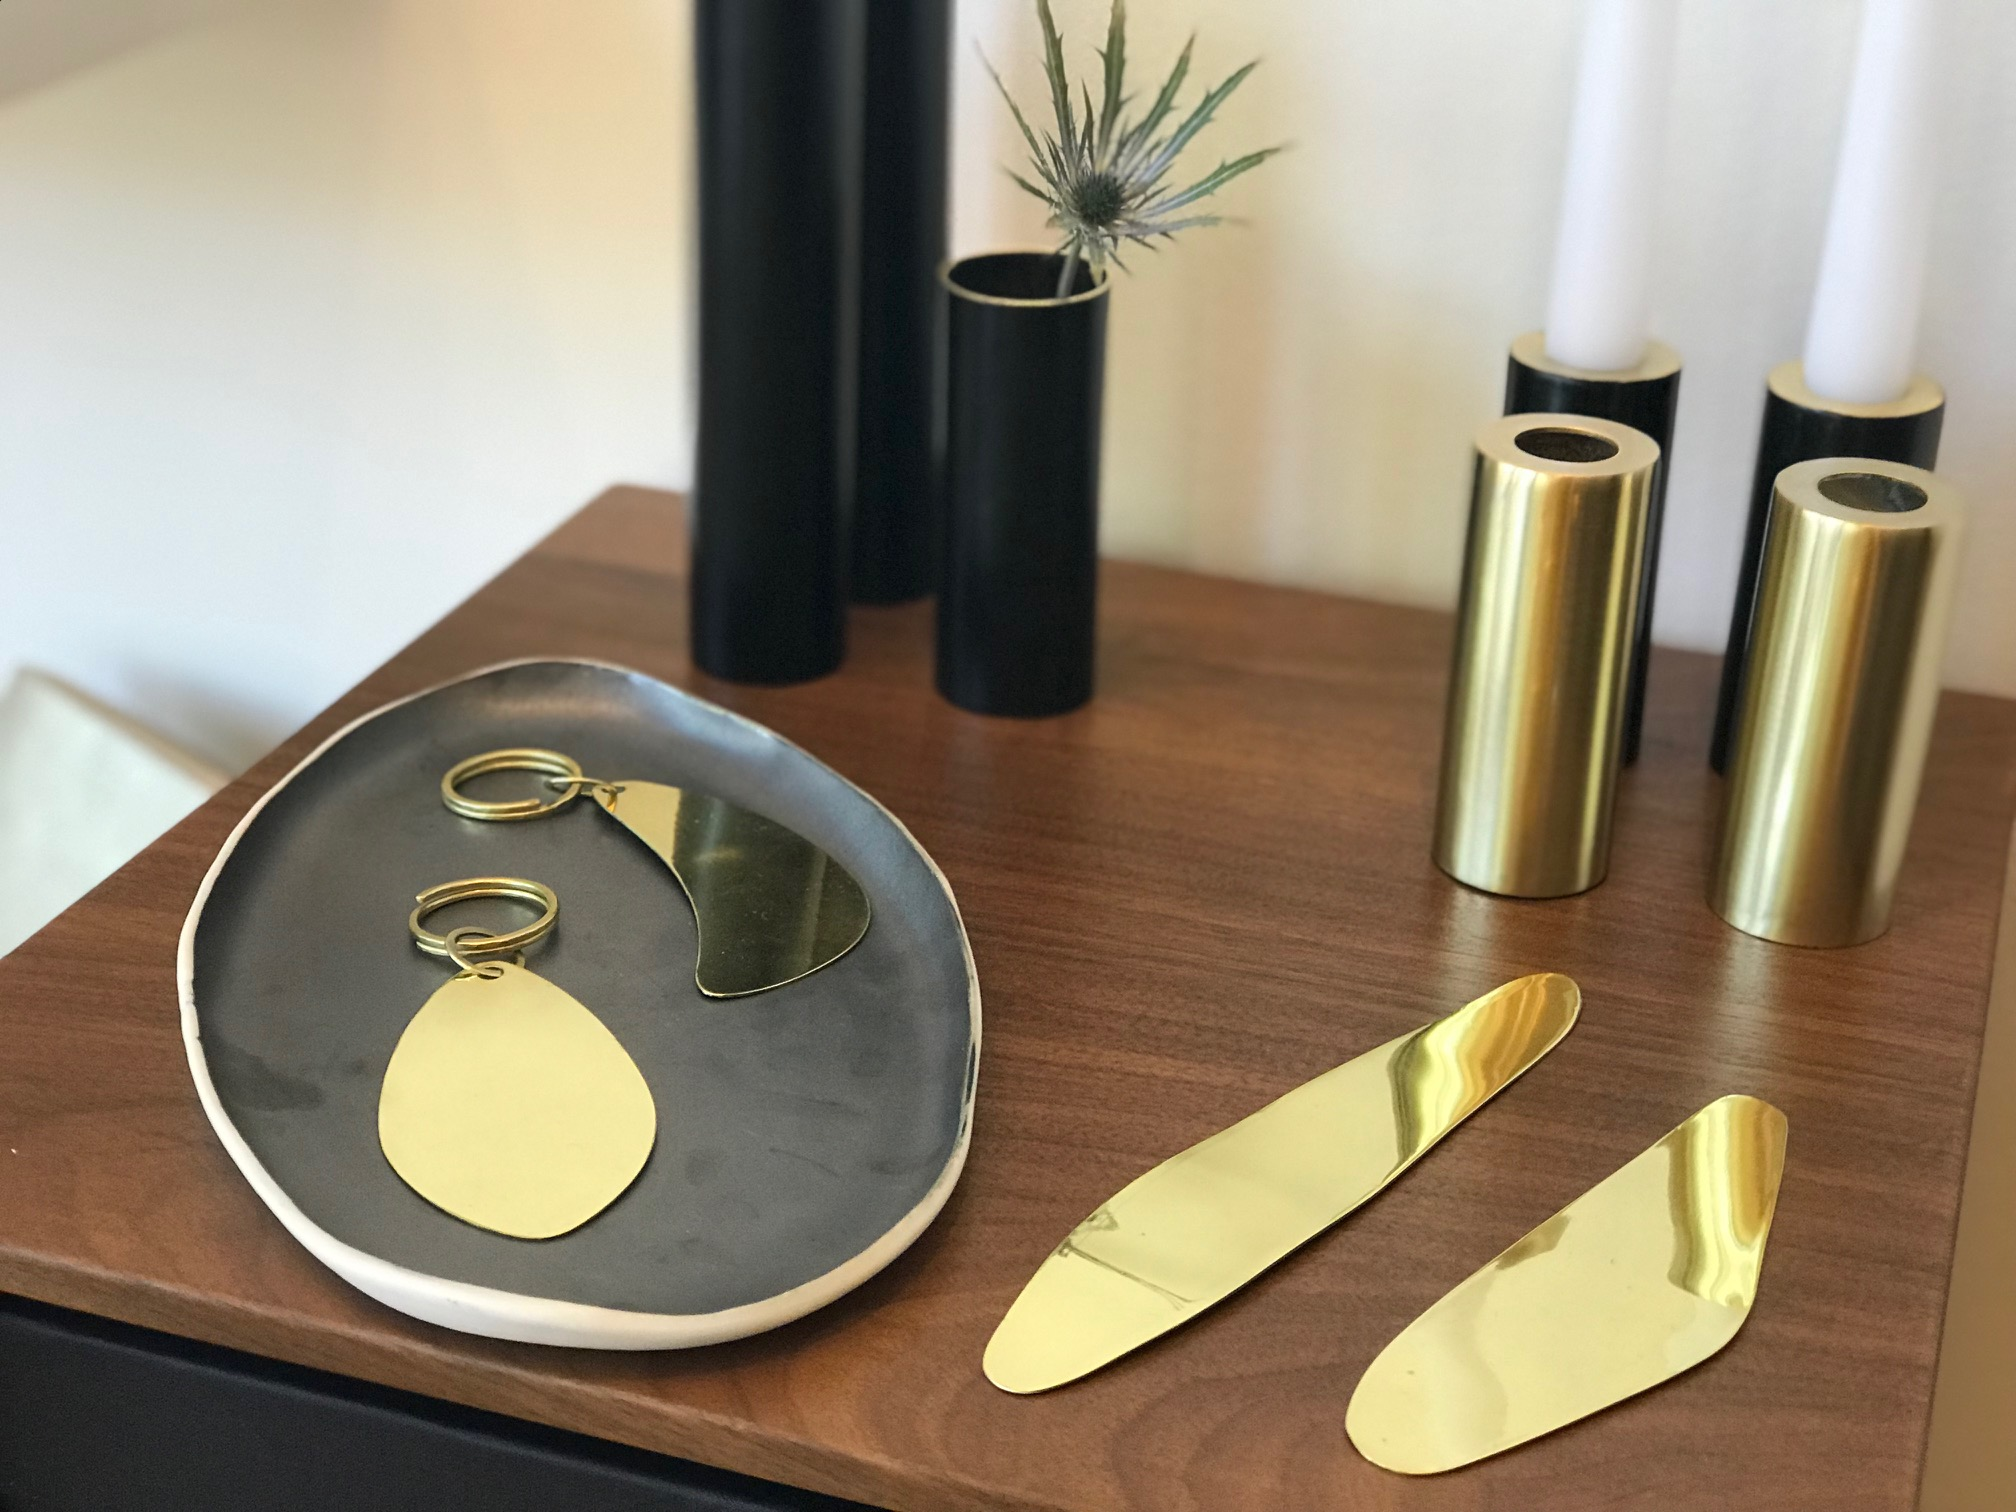 Brass and black enamel pieces by Buenos Aires-based Sibilia